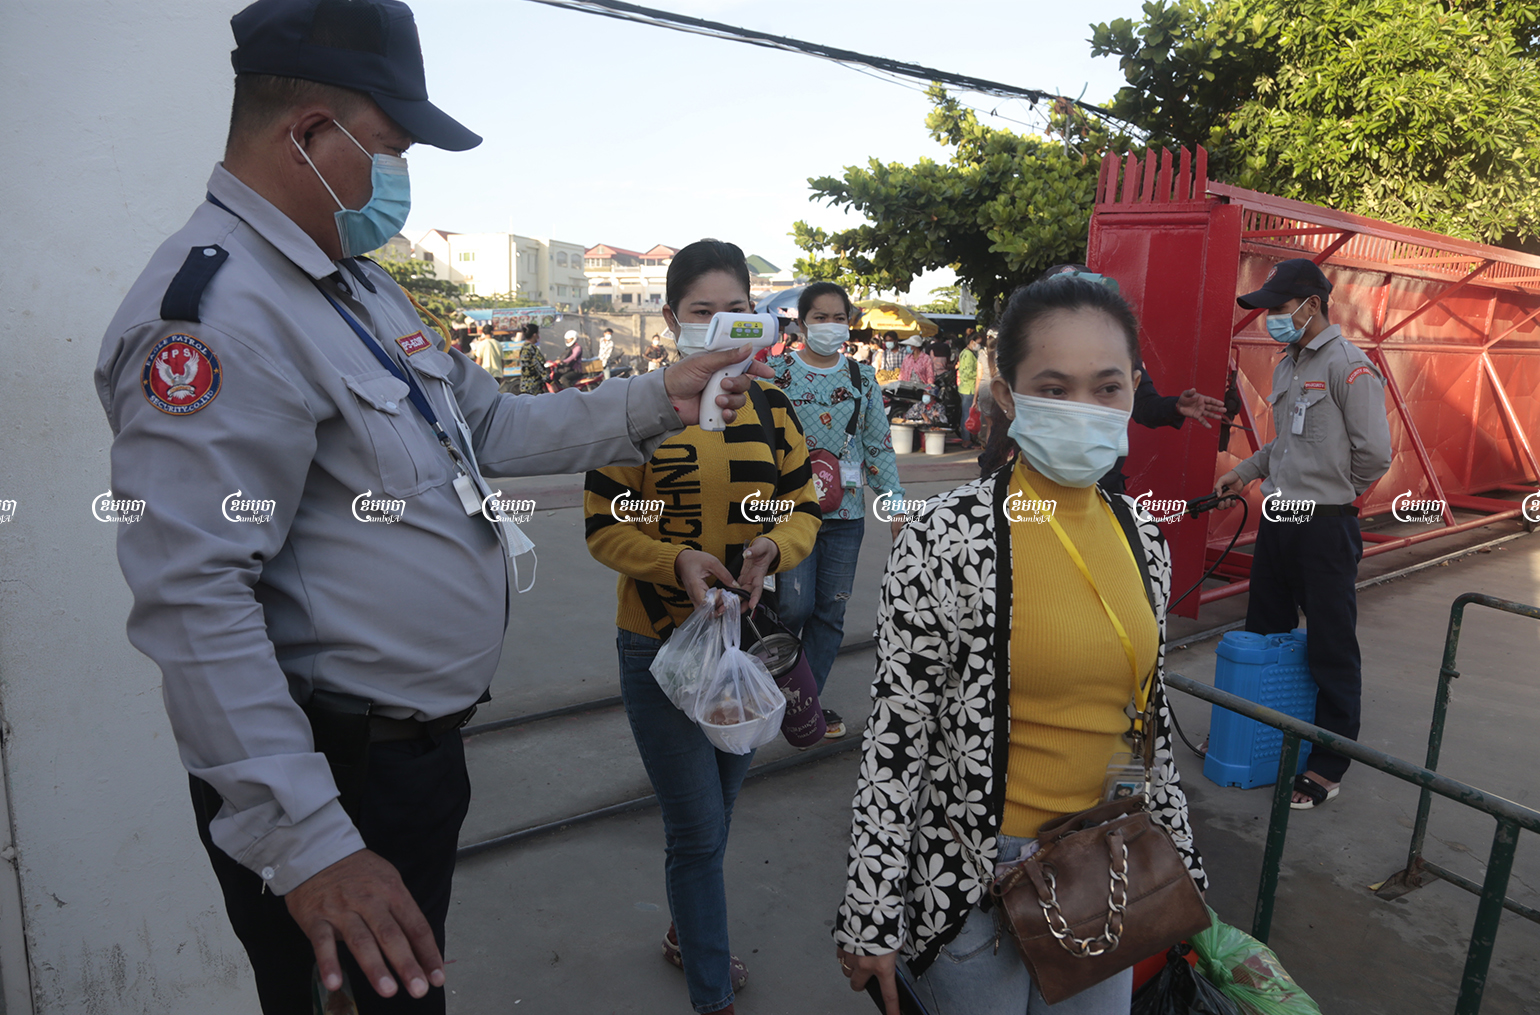 Garment workers get their temperature checked as they arrive at their factory in Phnom Penh, June 14, 2021. CamboJA/ Panha Chhorpoan